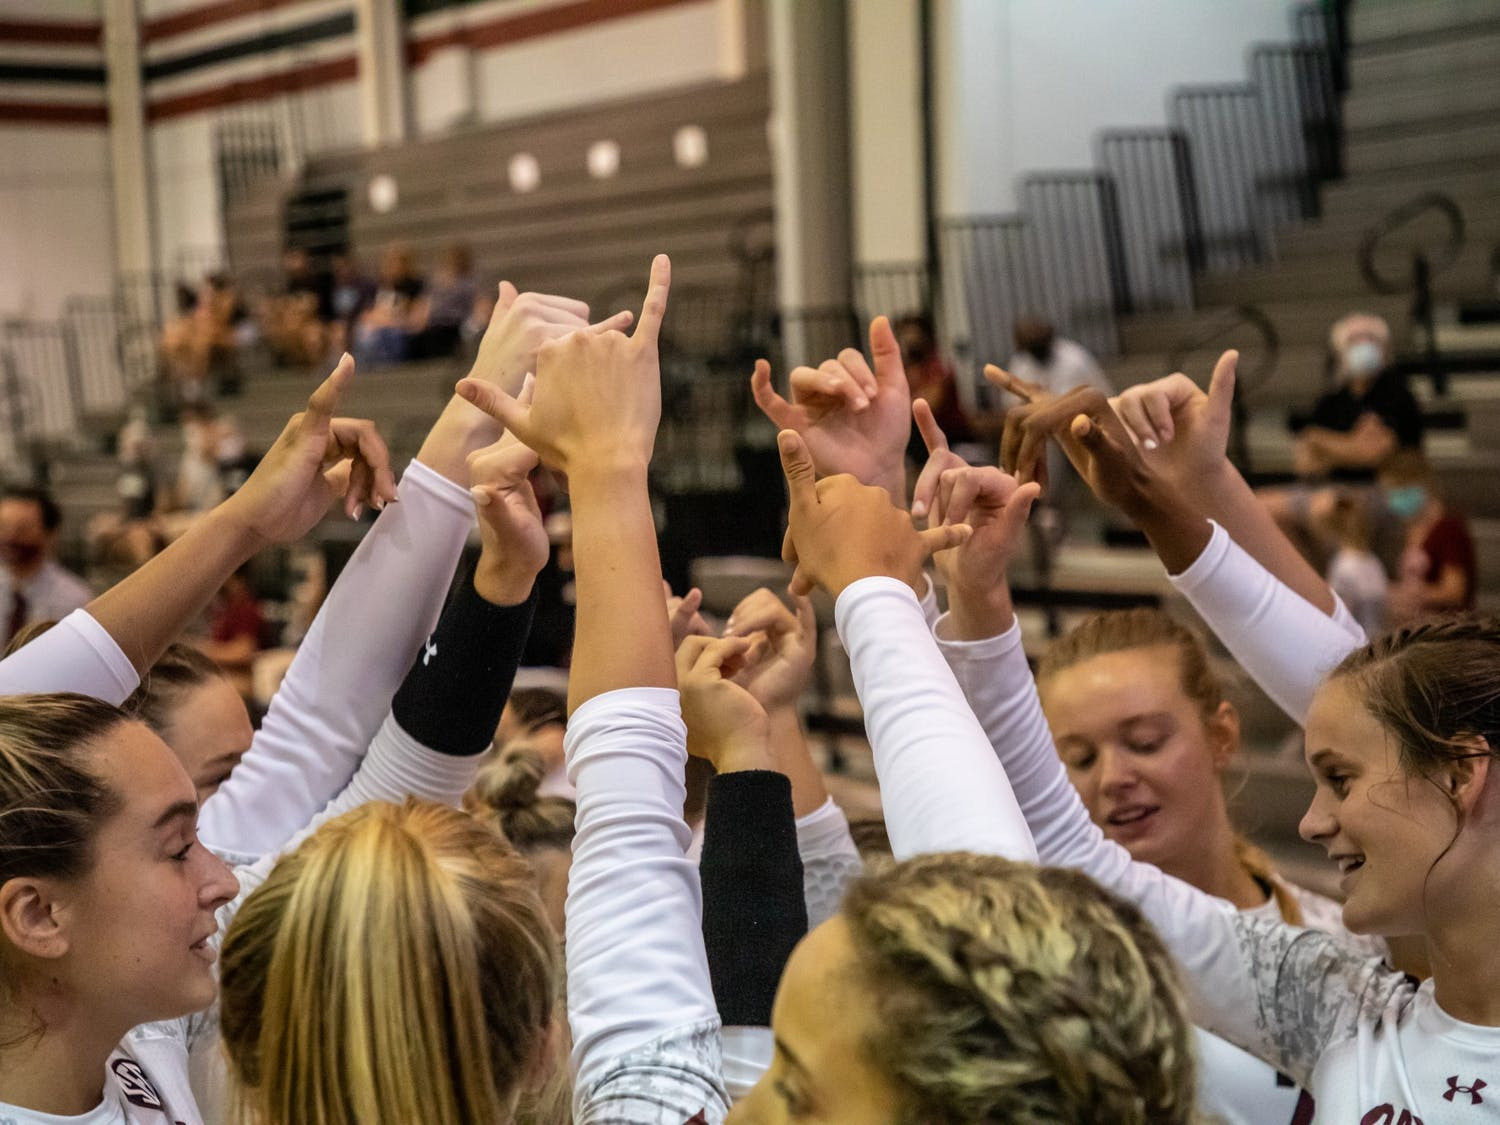 The South Carolina volleyball team holds up the Spurs Up symbol during the game against UCF.